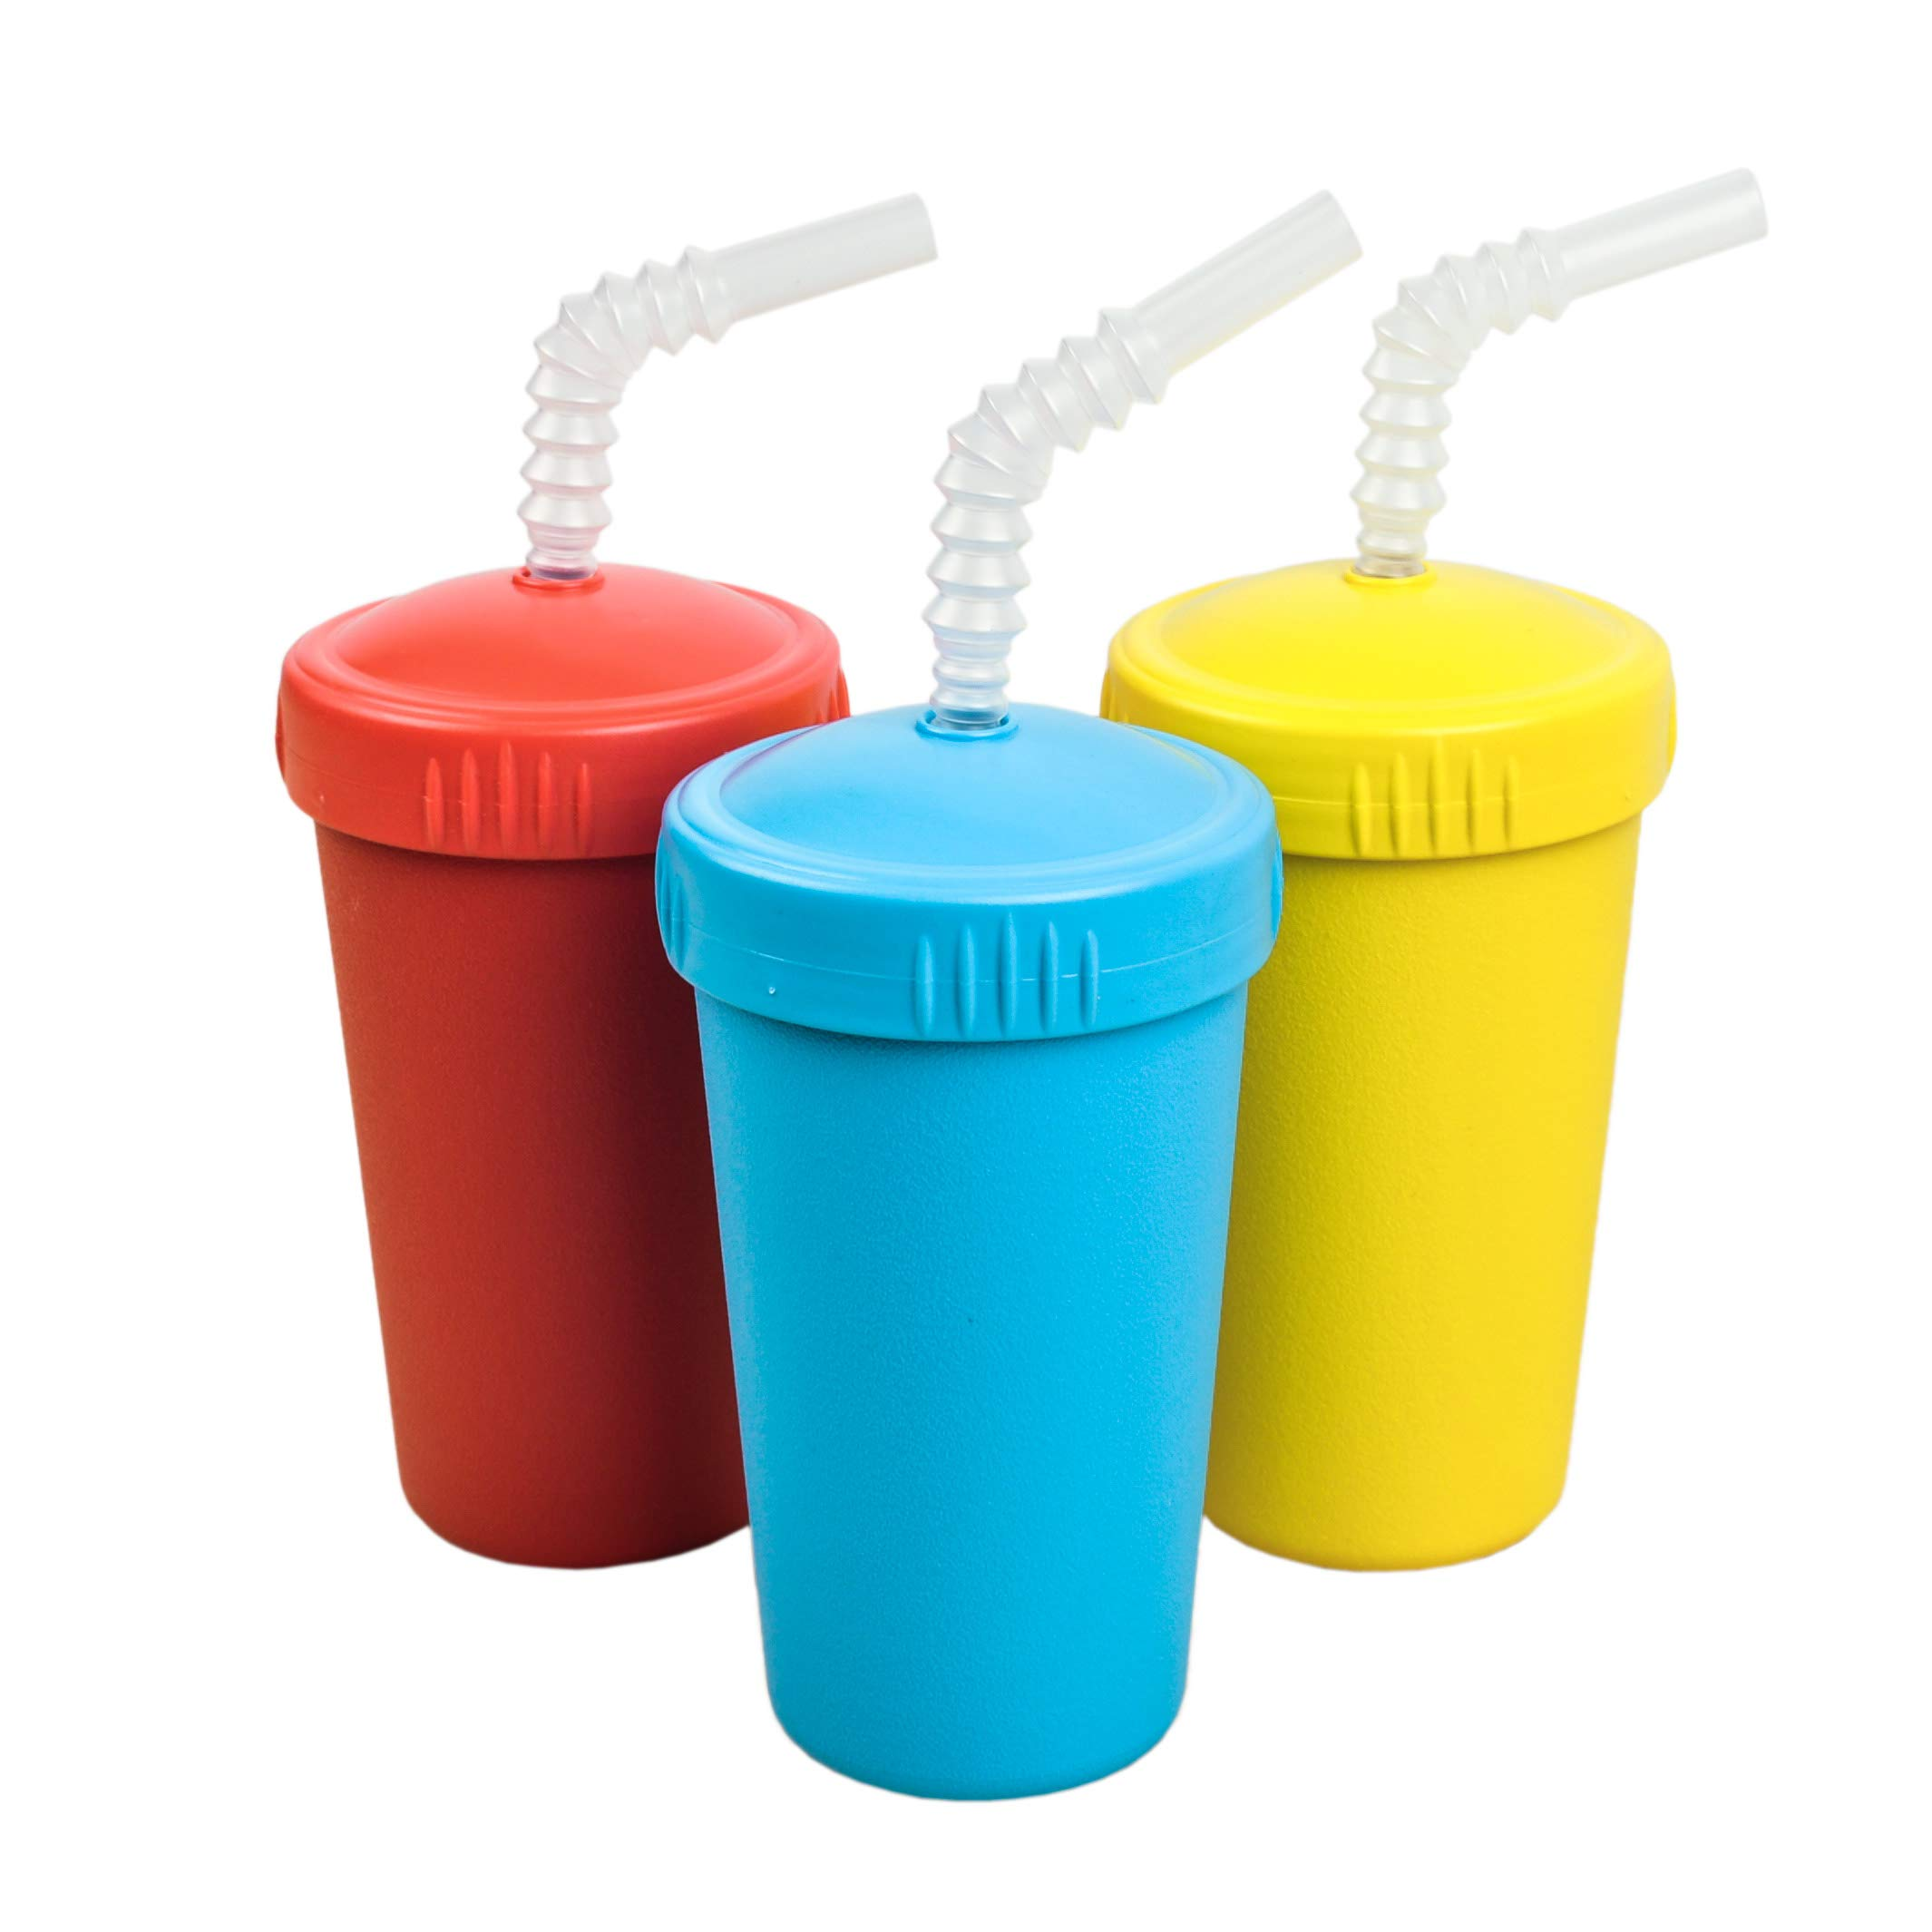 Re-Play Made in The USA 3pk Straw Cups for Baby, Toddler, and Child Feeding - Red, Yellow, Sky Blue (Preschool)